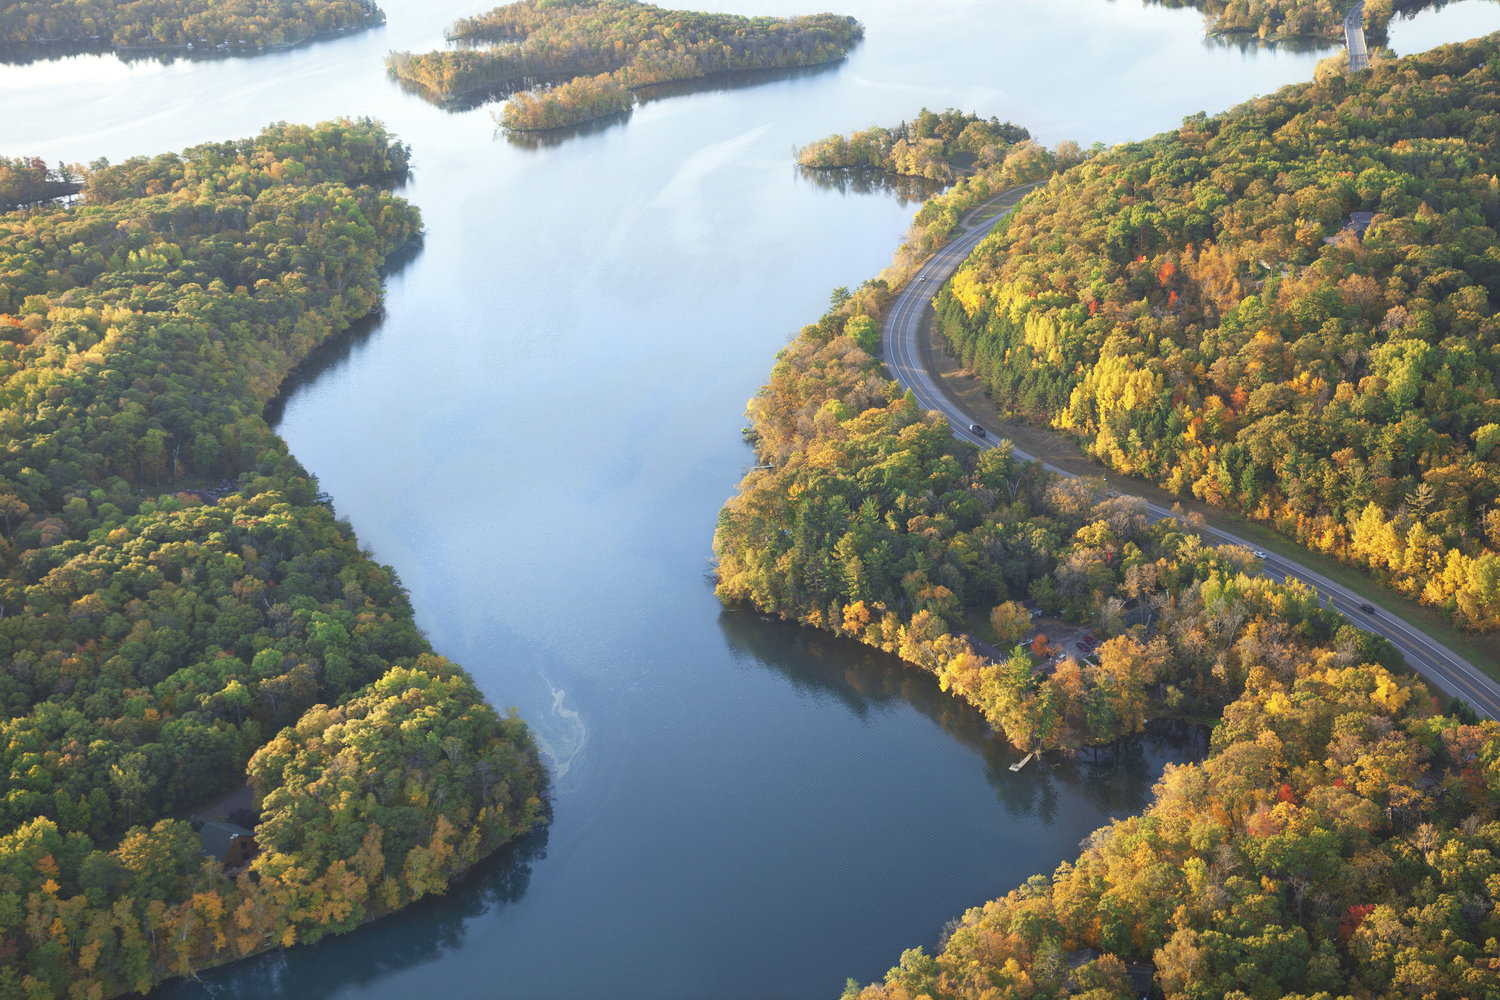 a view of the Mississippi River surrounded by trees